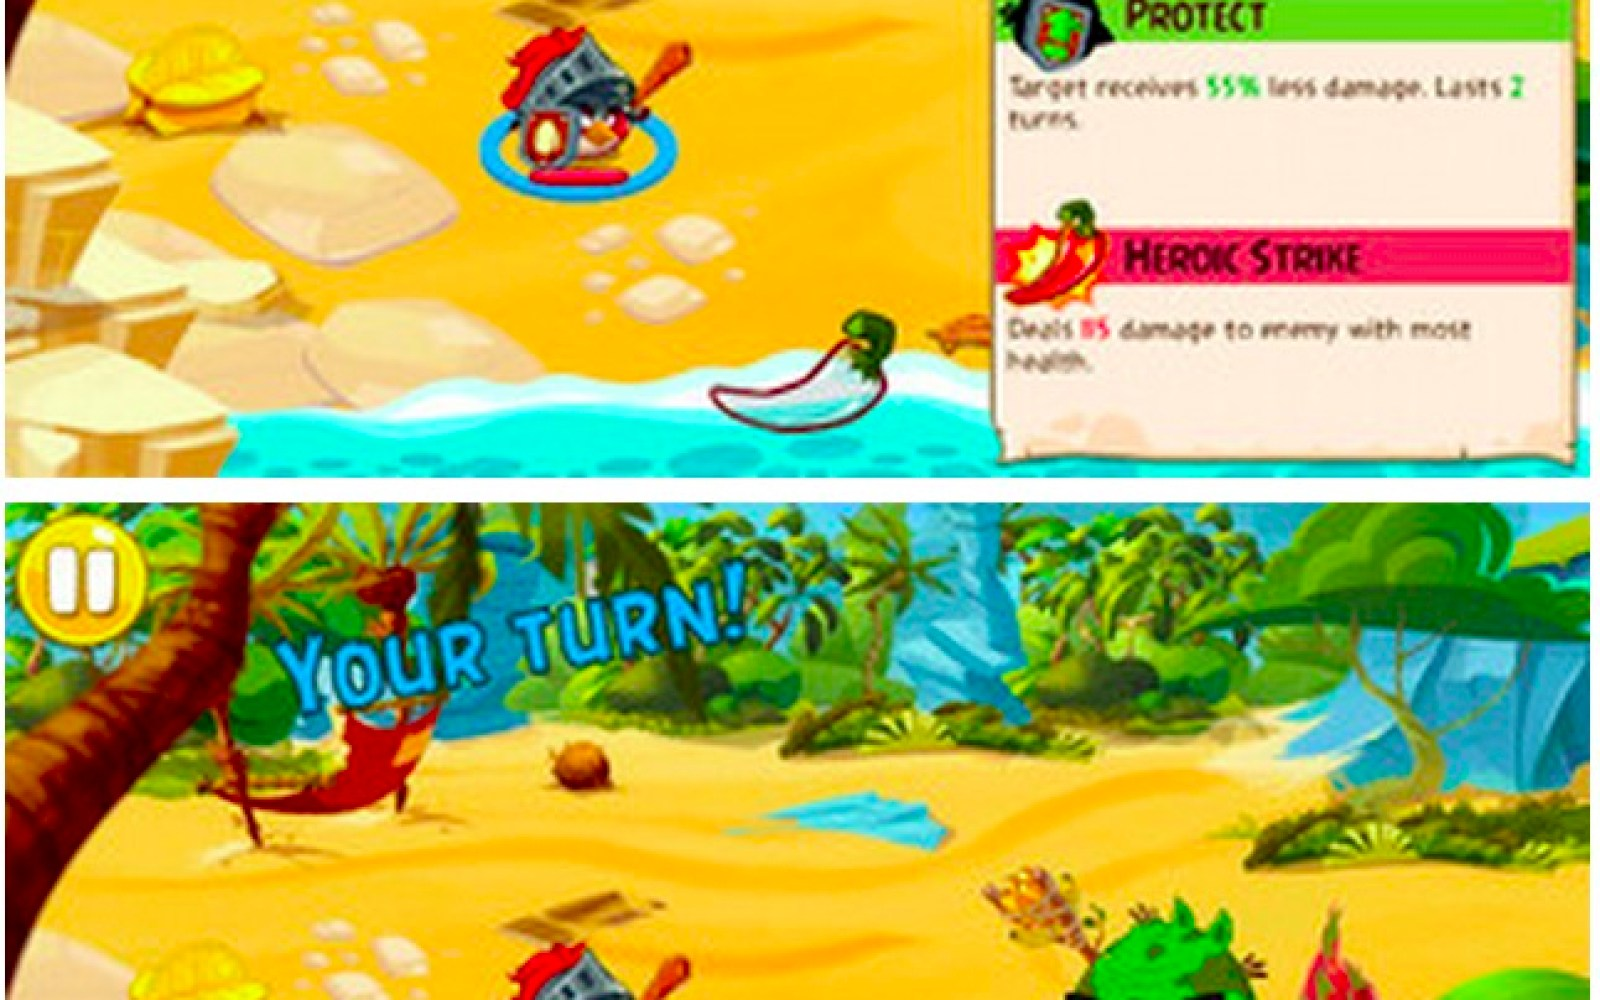 Get your Role Play on with new Angry Birds 'Epic' from Rovio